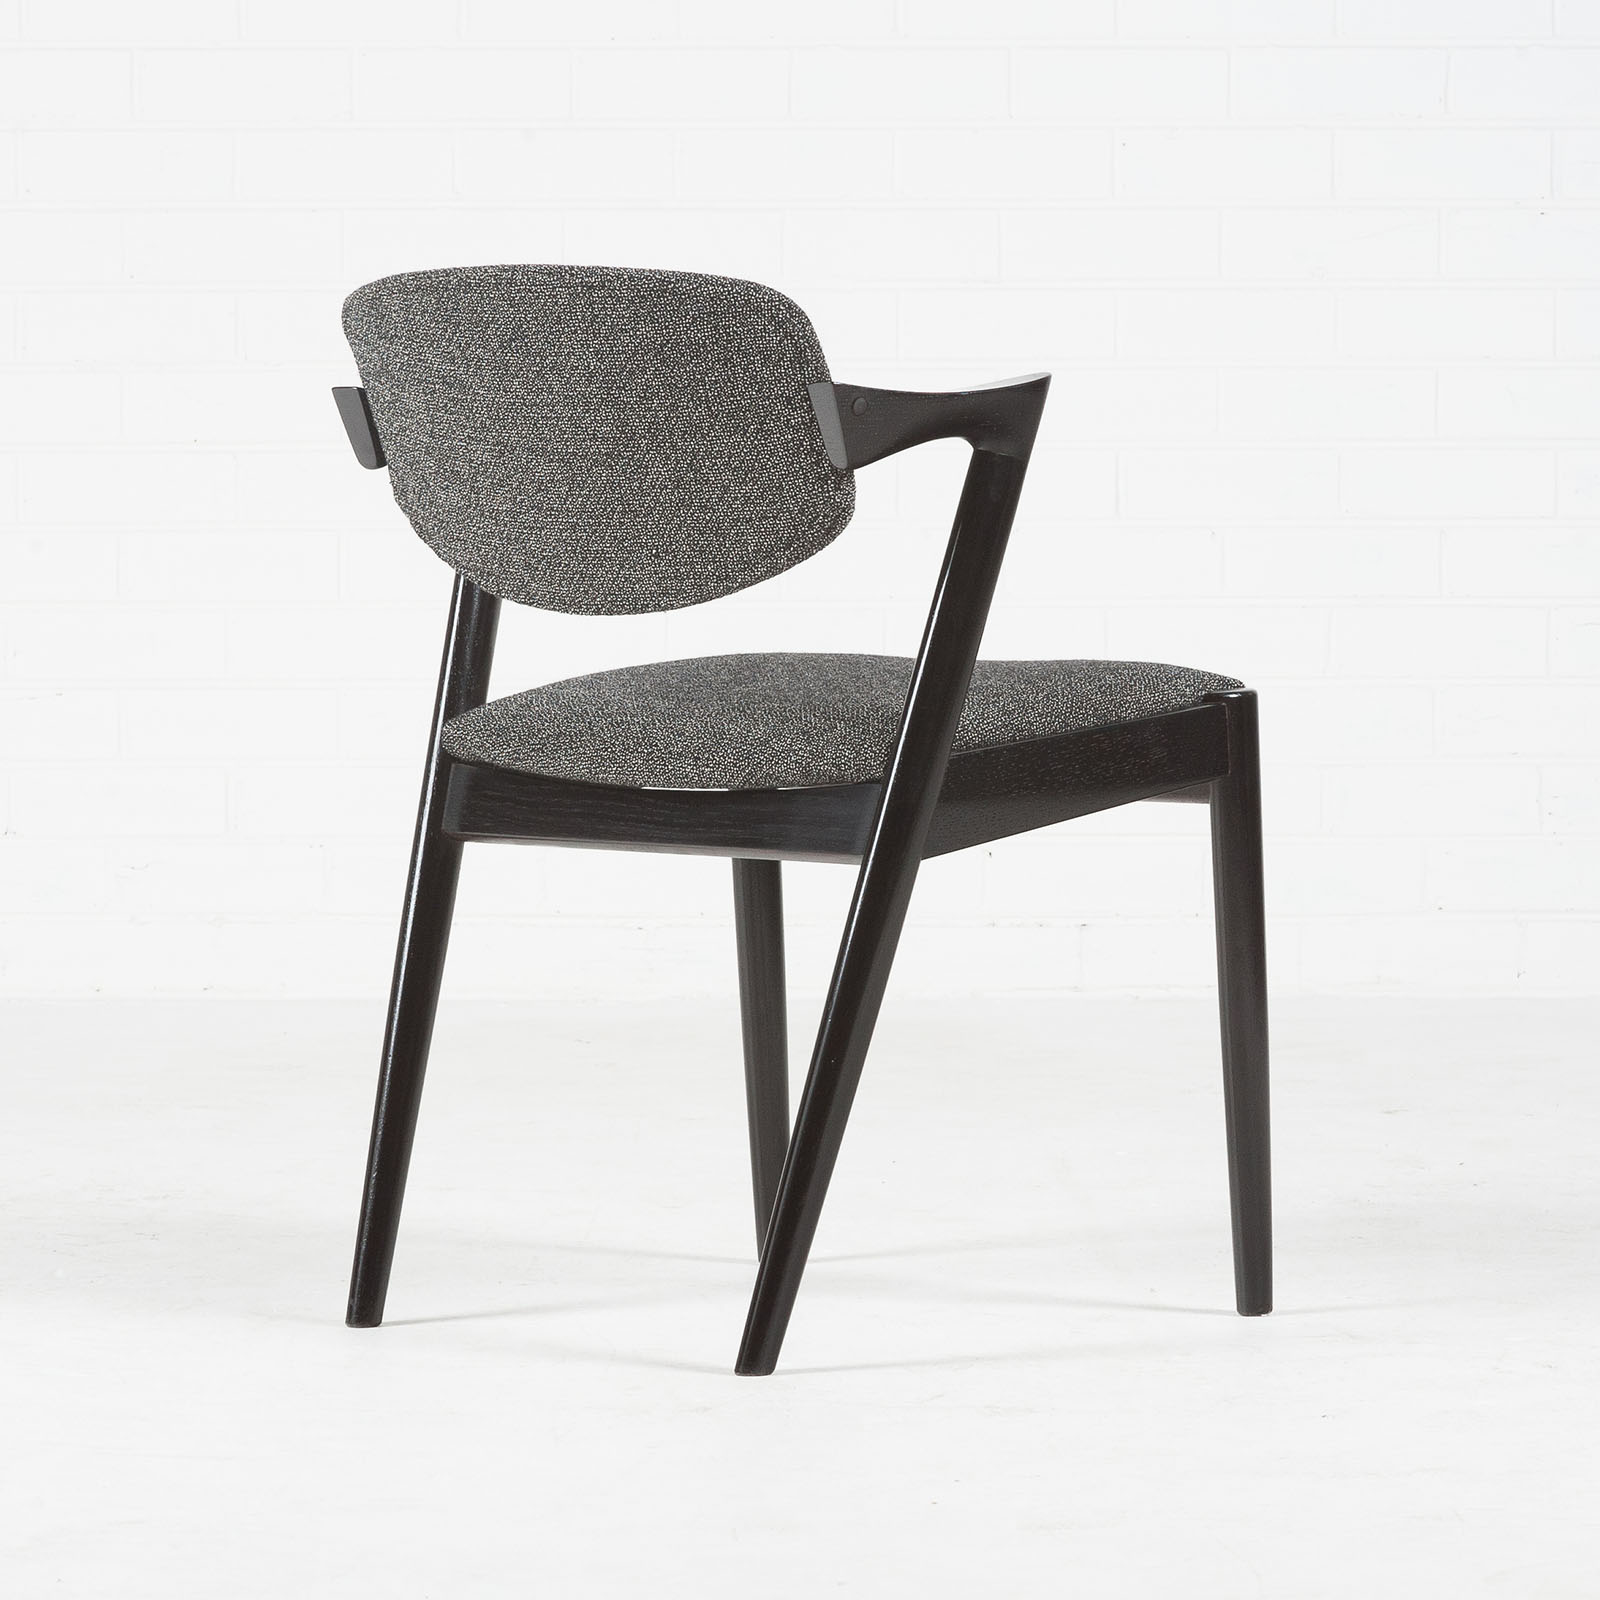 Set 4 Model 42 Dining Chairs By Kai Kristiansen In Stained Oak And New Kvadrat Upholstery 1959 Denmark 04